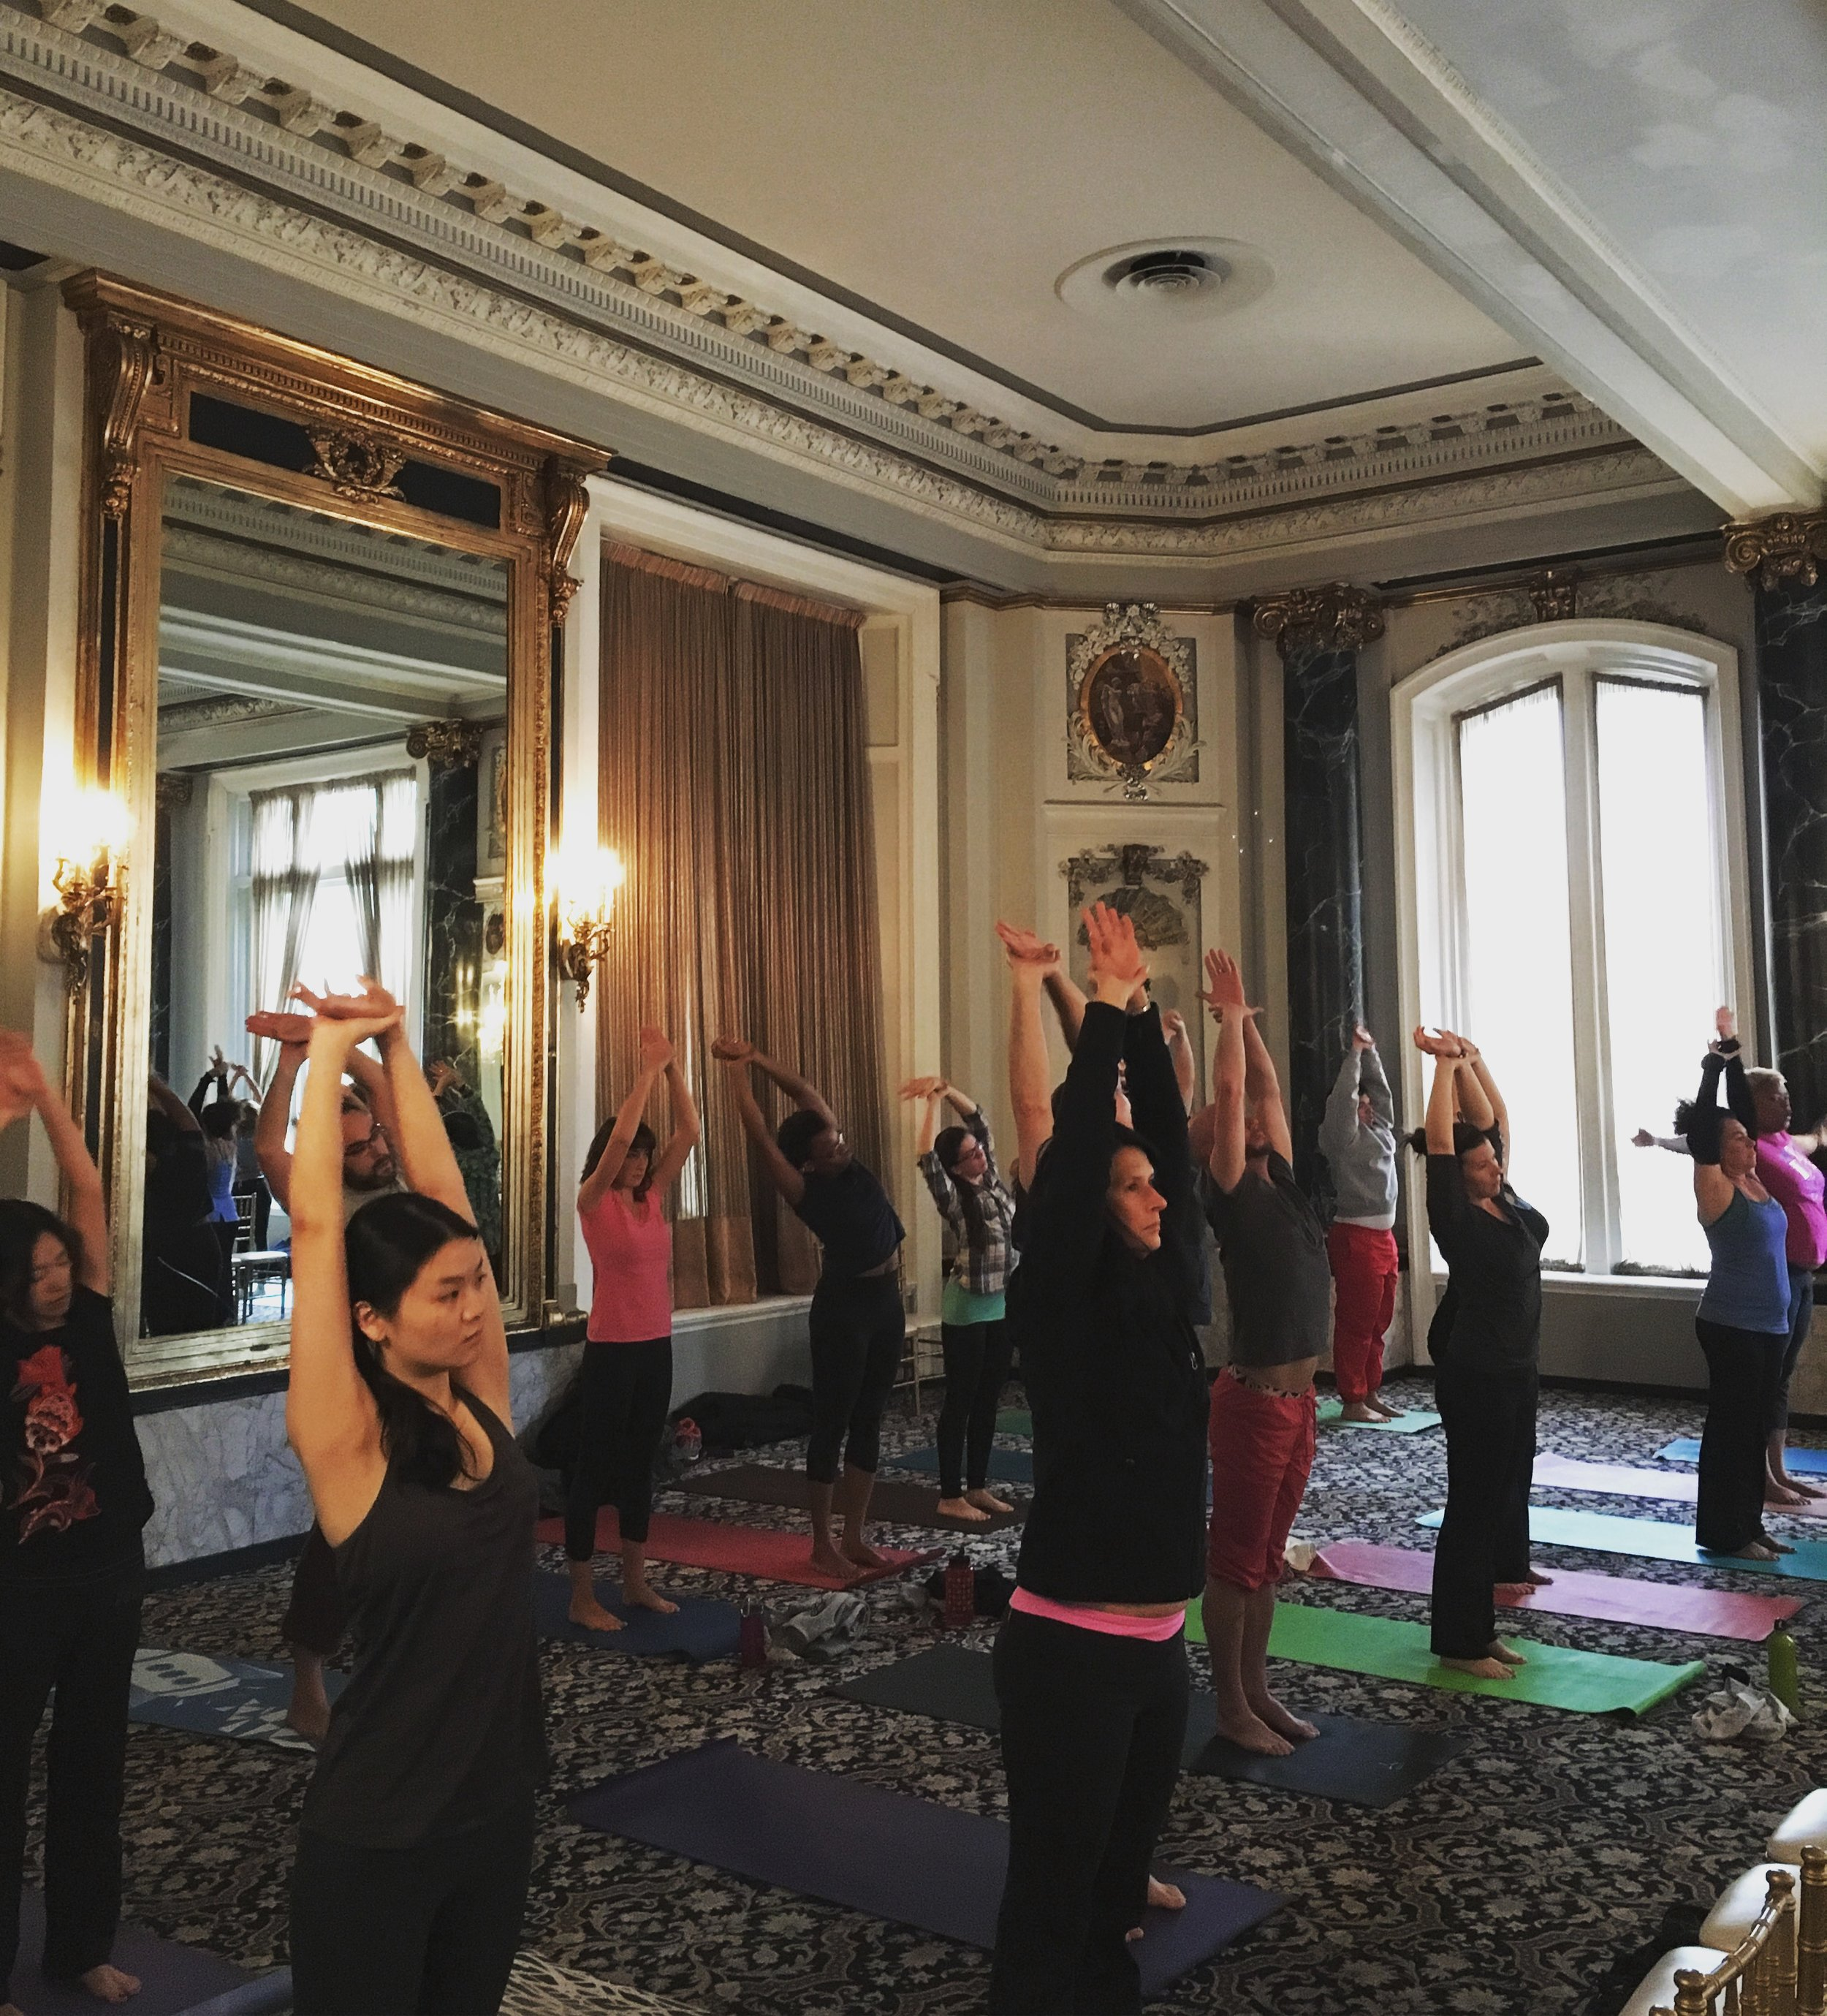 Be More Yoga in the Belvedere Hotel